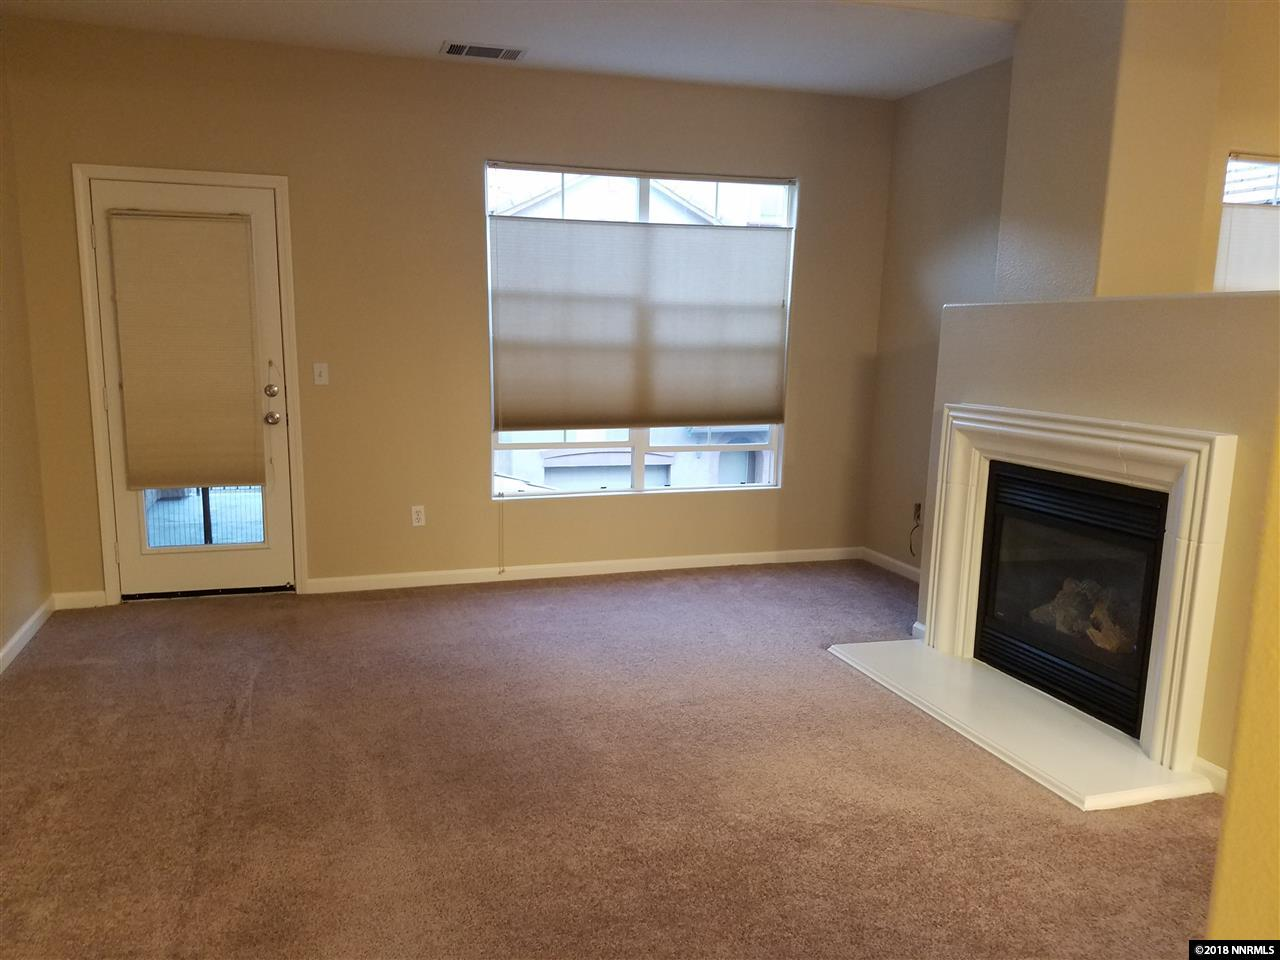 Image for 1325 South Meadows Parkway, Reno, NV 89521